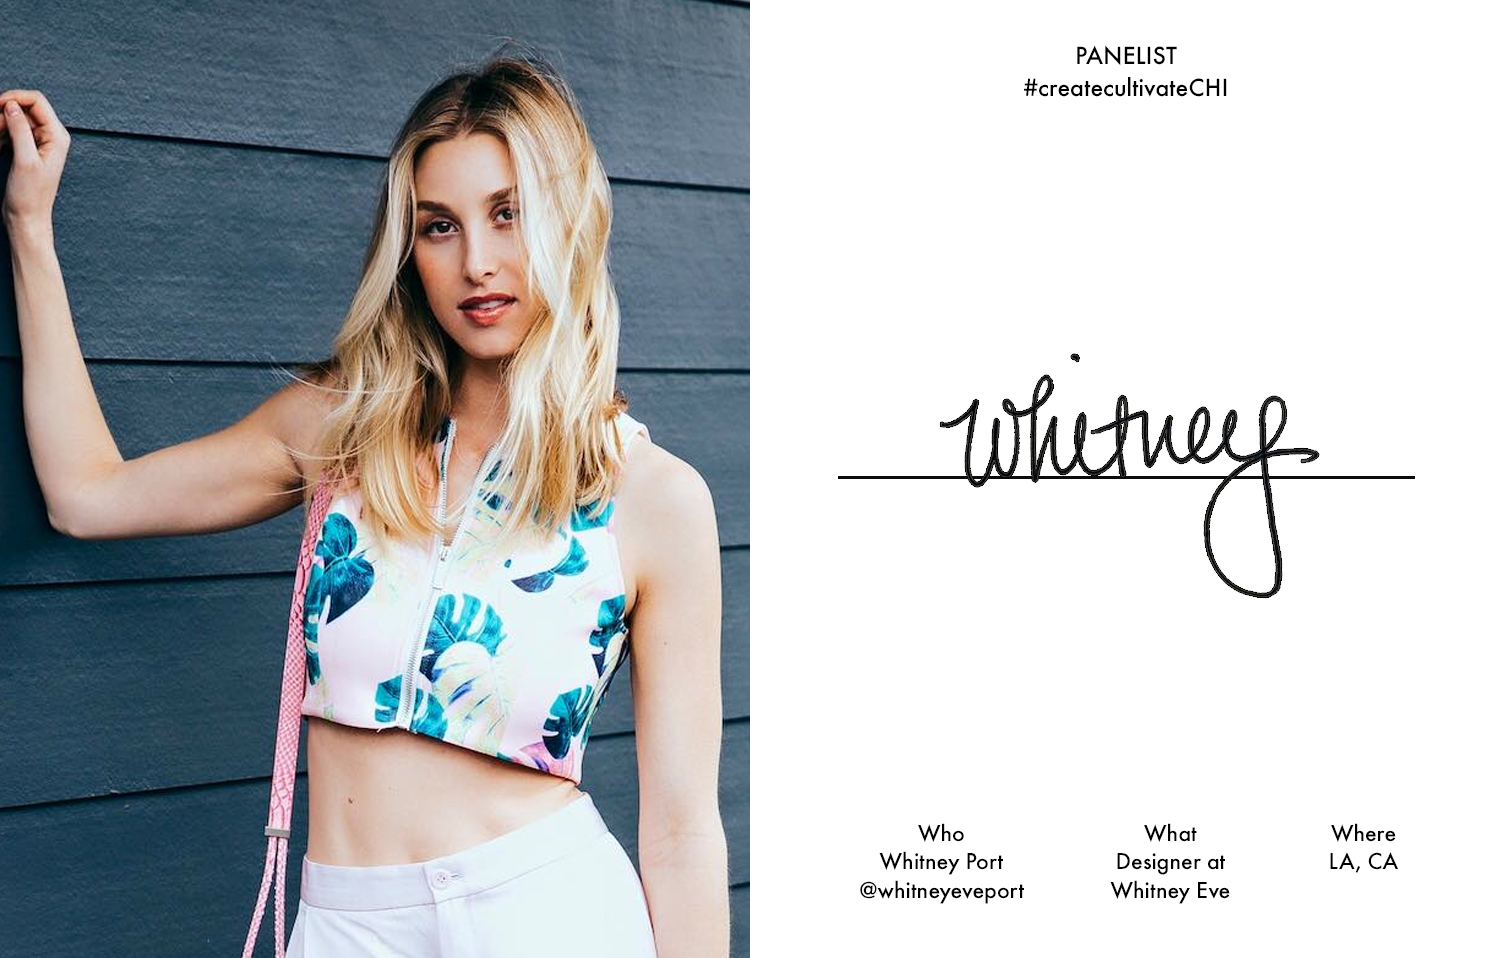 Whitney wearing her  Awapuhi crop top, $79 , the talk of our #createcultivateLA conference!